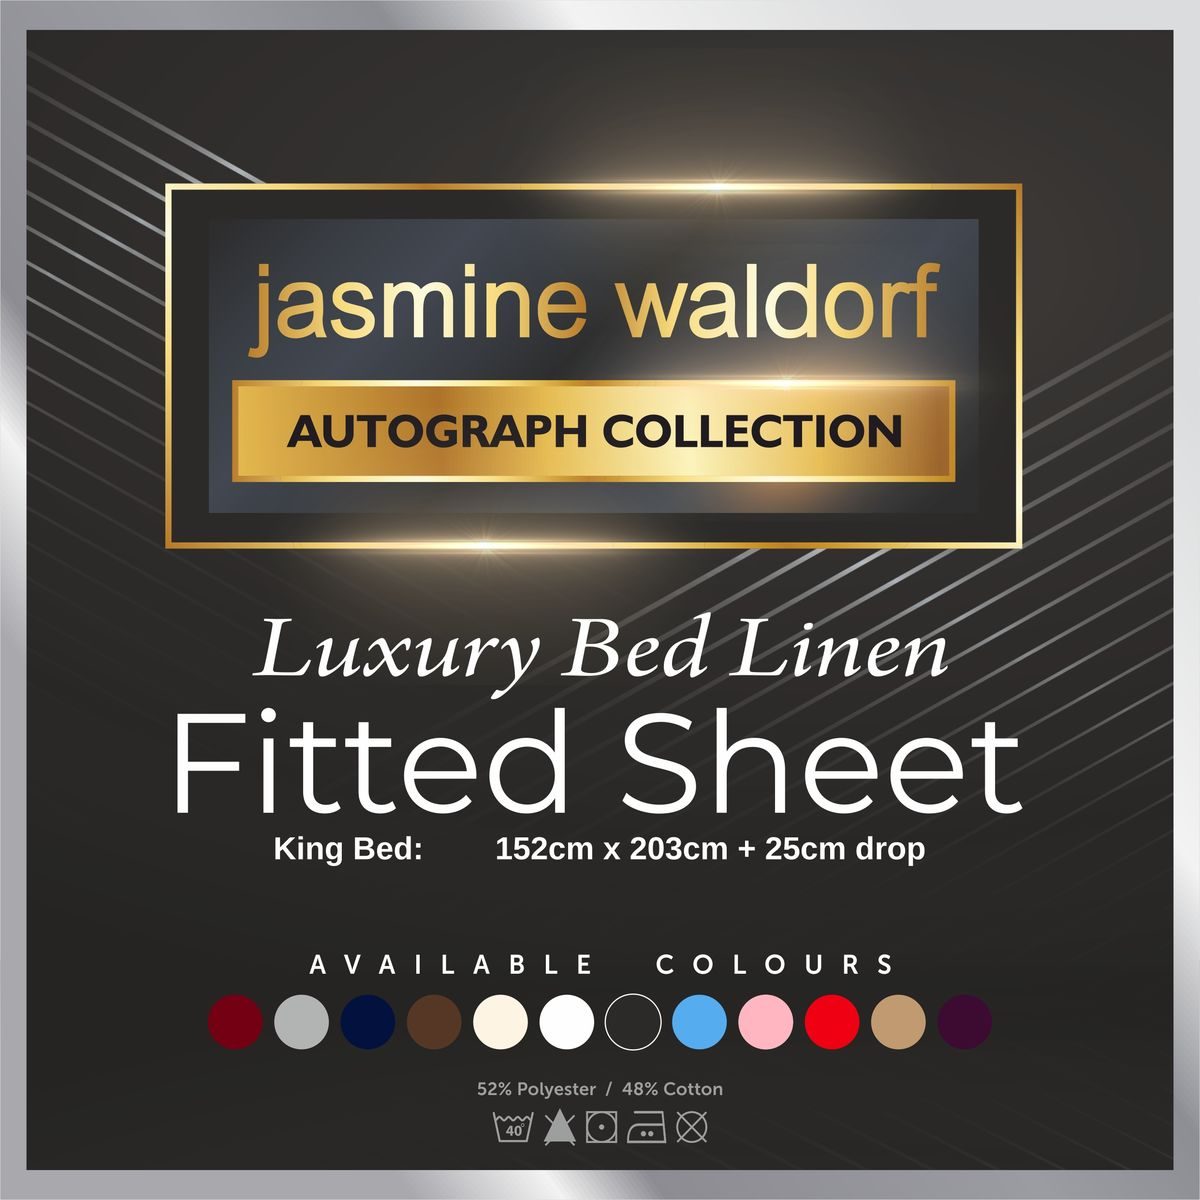 Jasmine Waldorf Luxury Fitted Bed Sheet (King) - product images  of